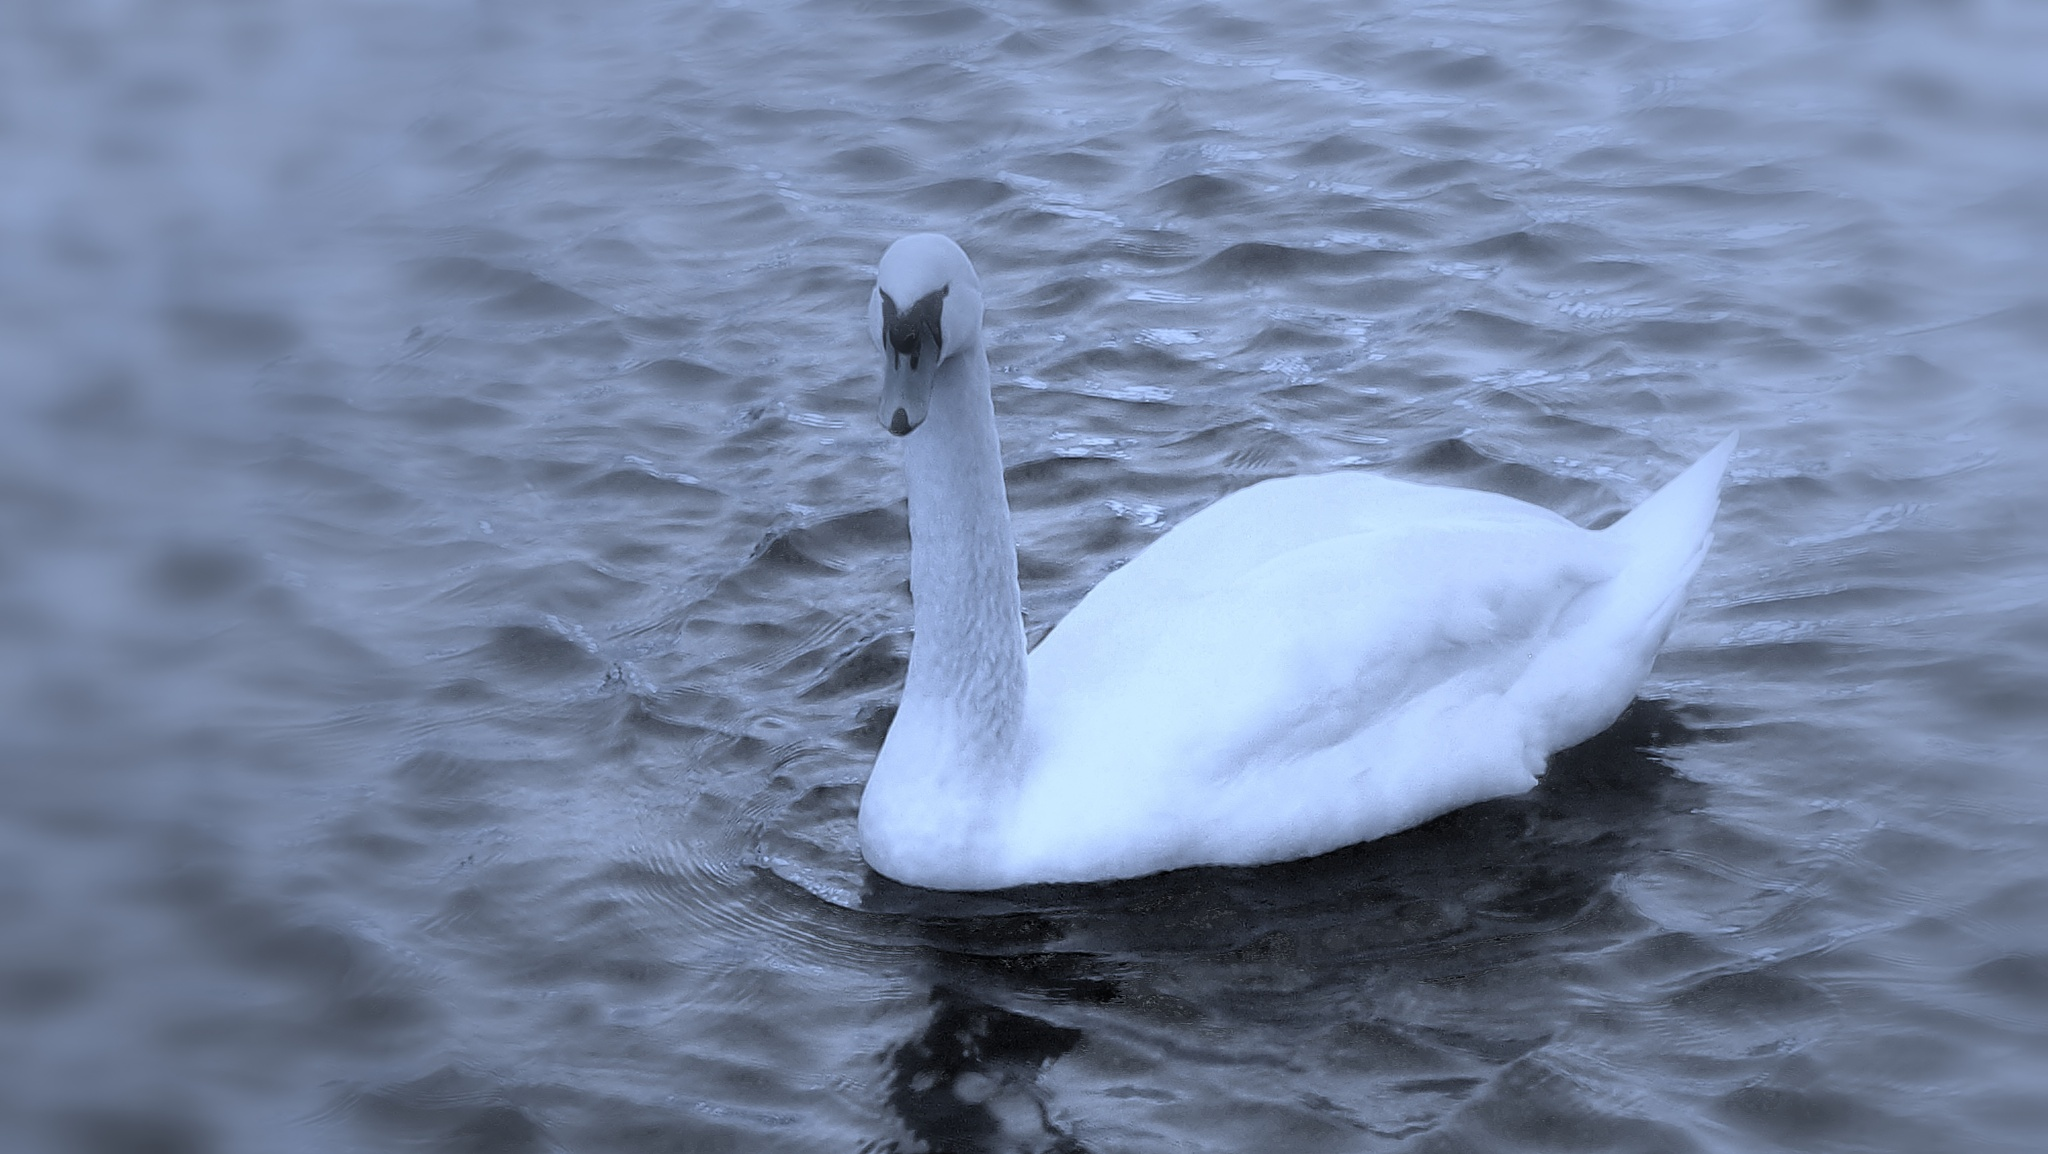 The handsome swan of Limmat River by Rudy Tarrazona Guacena